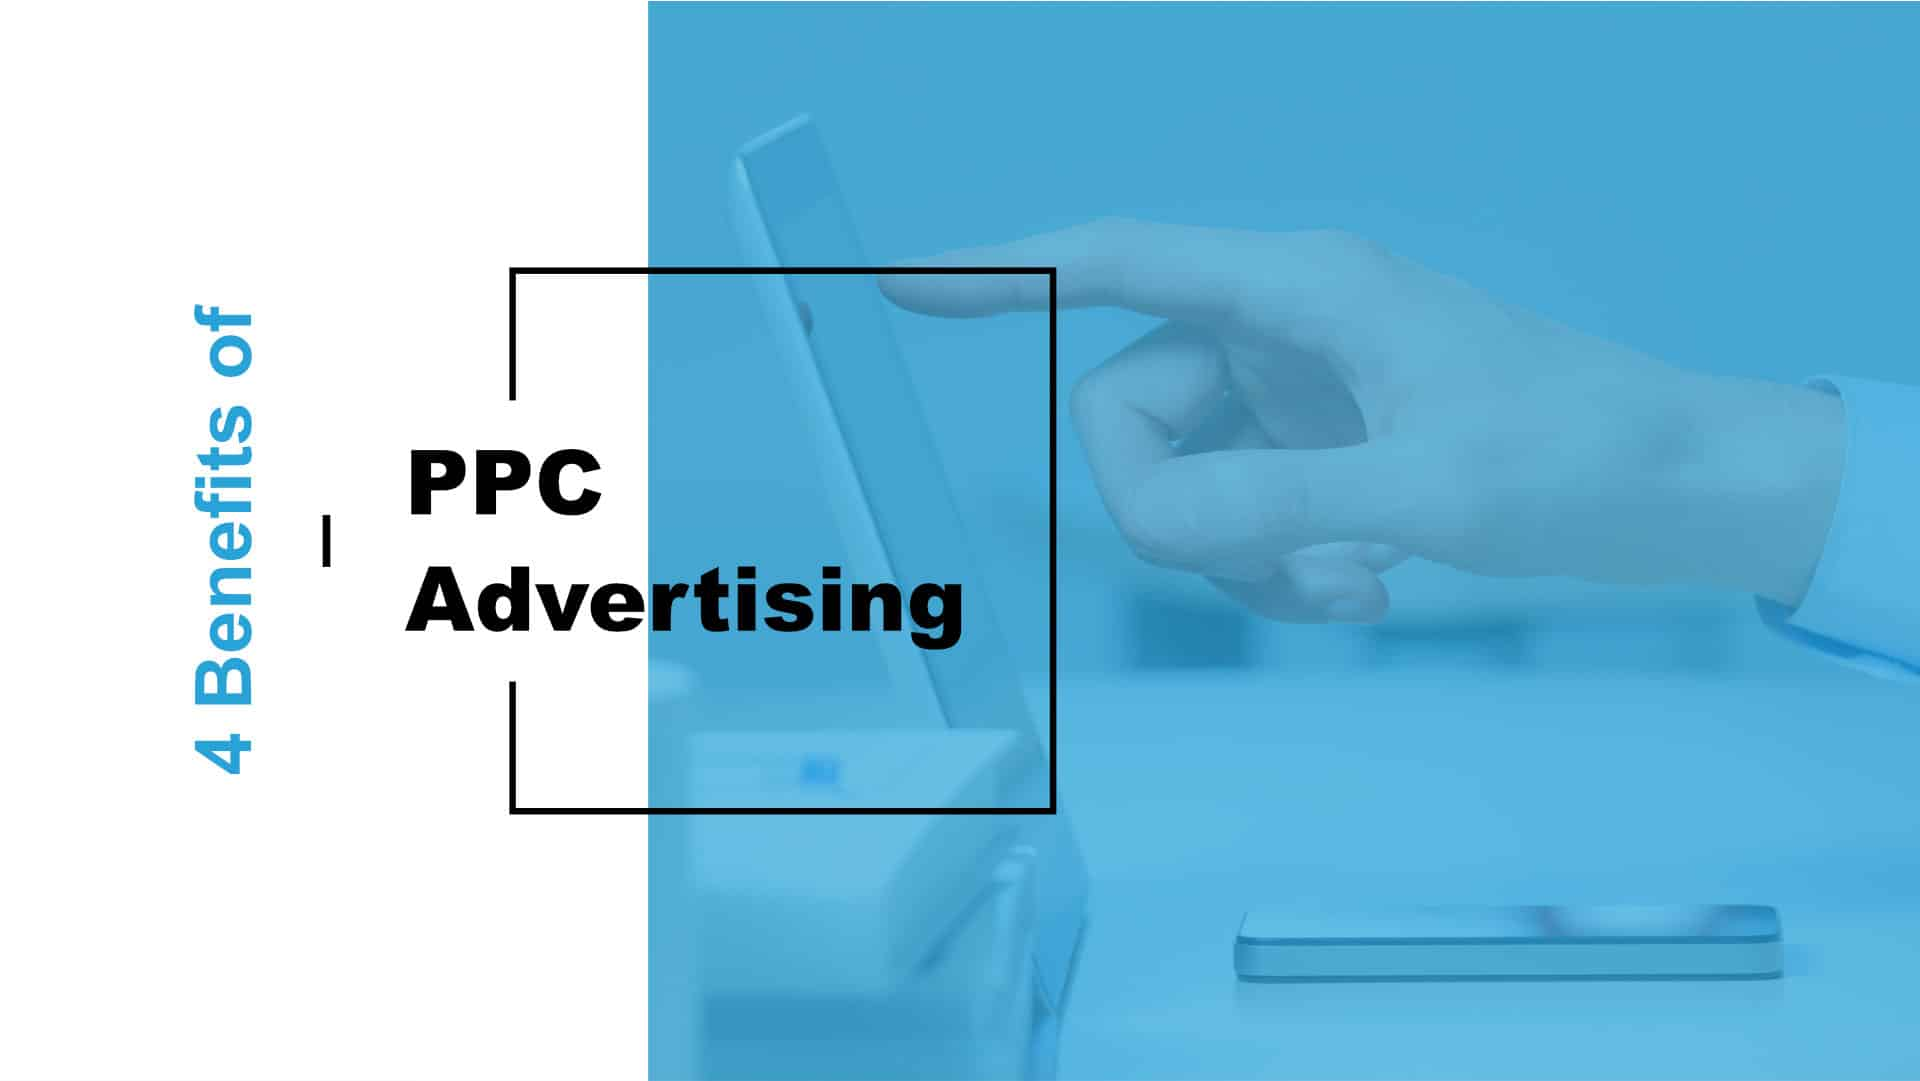 4 Benefits of PPC Advertising Featured Image